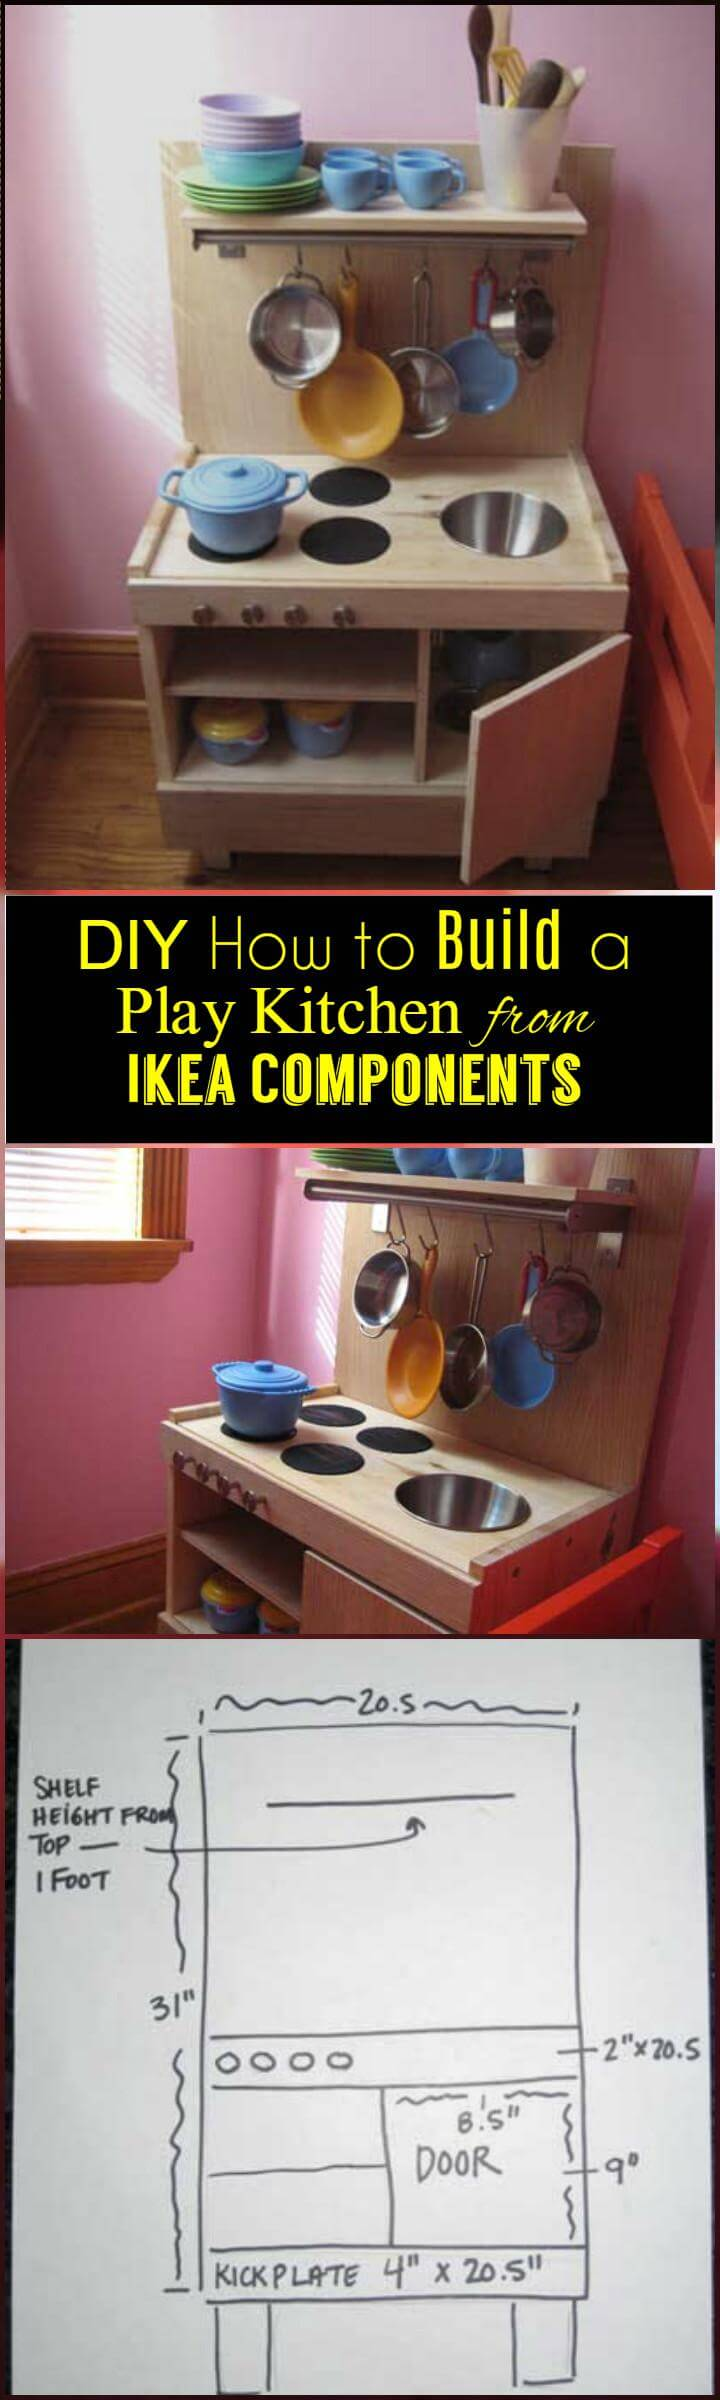 DIY handcrafted Idea component play kitchen